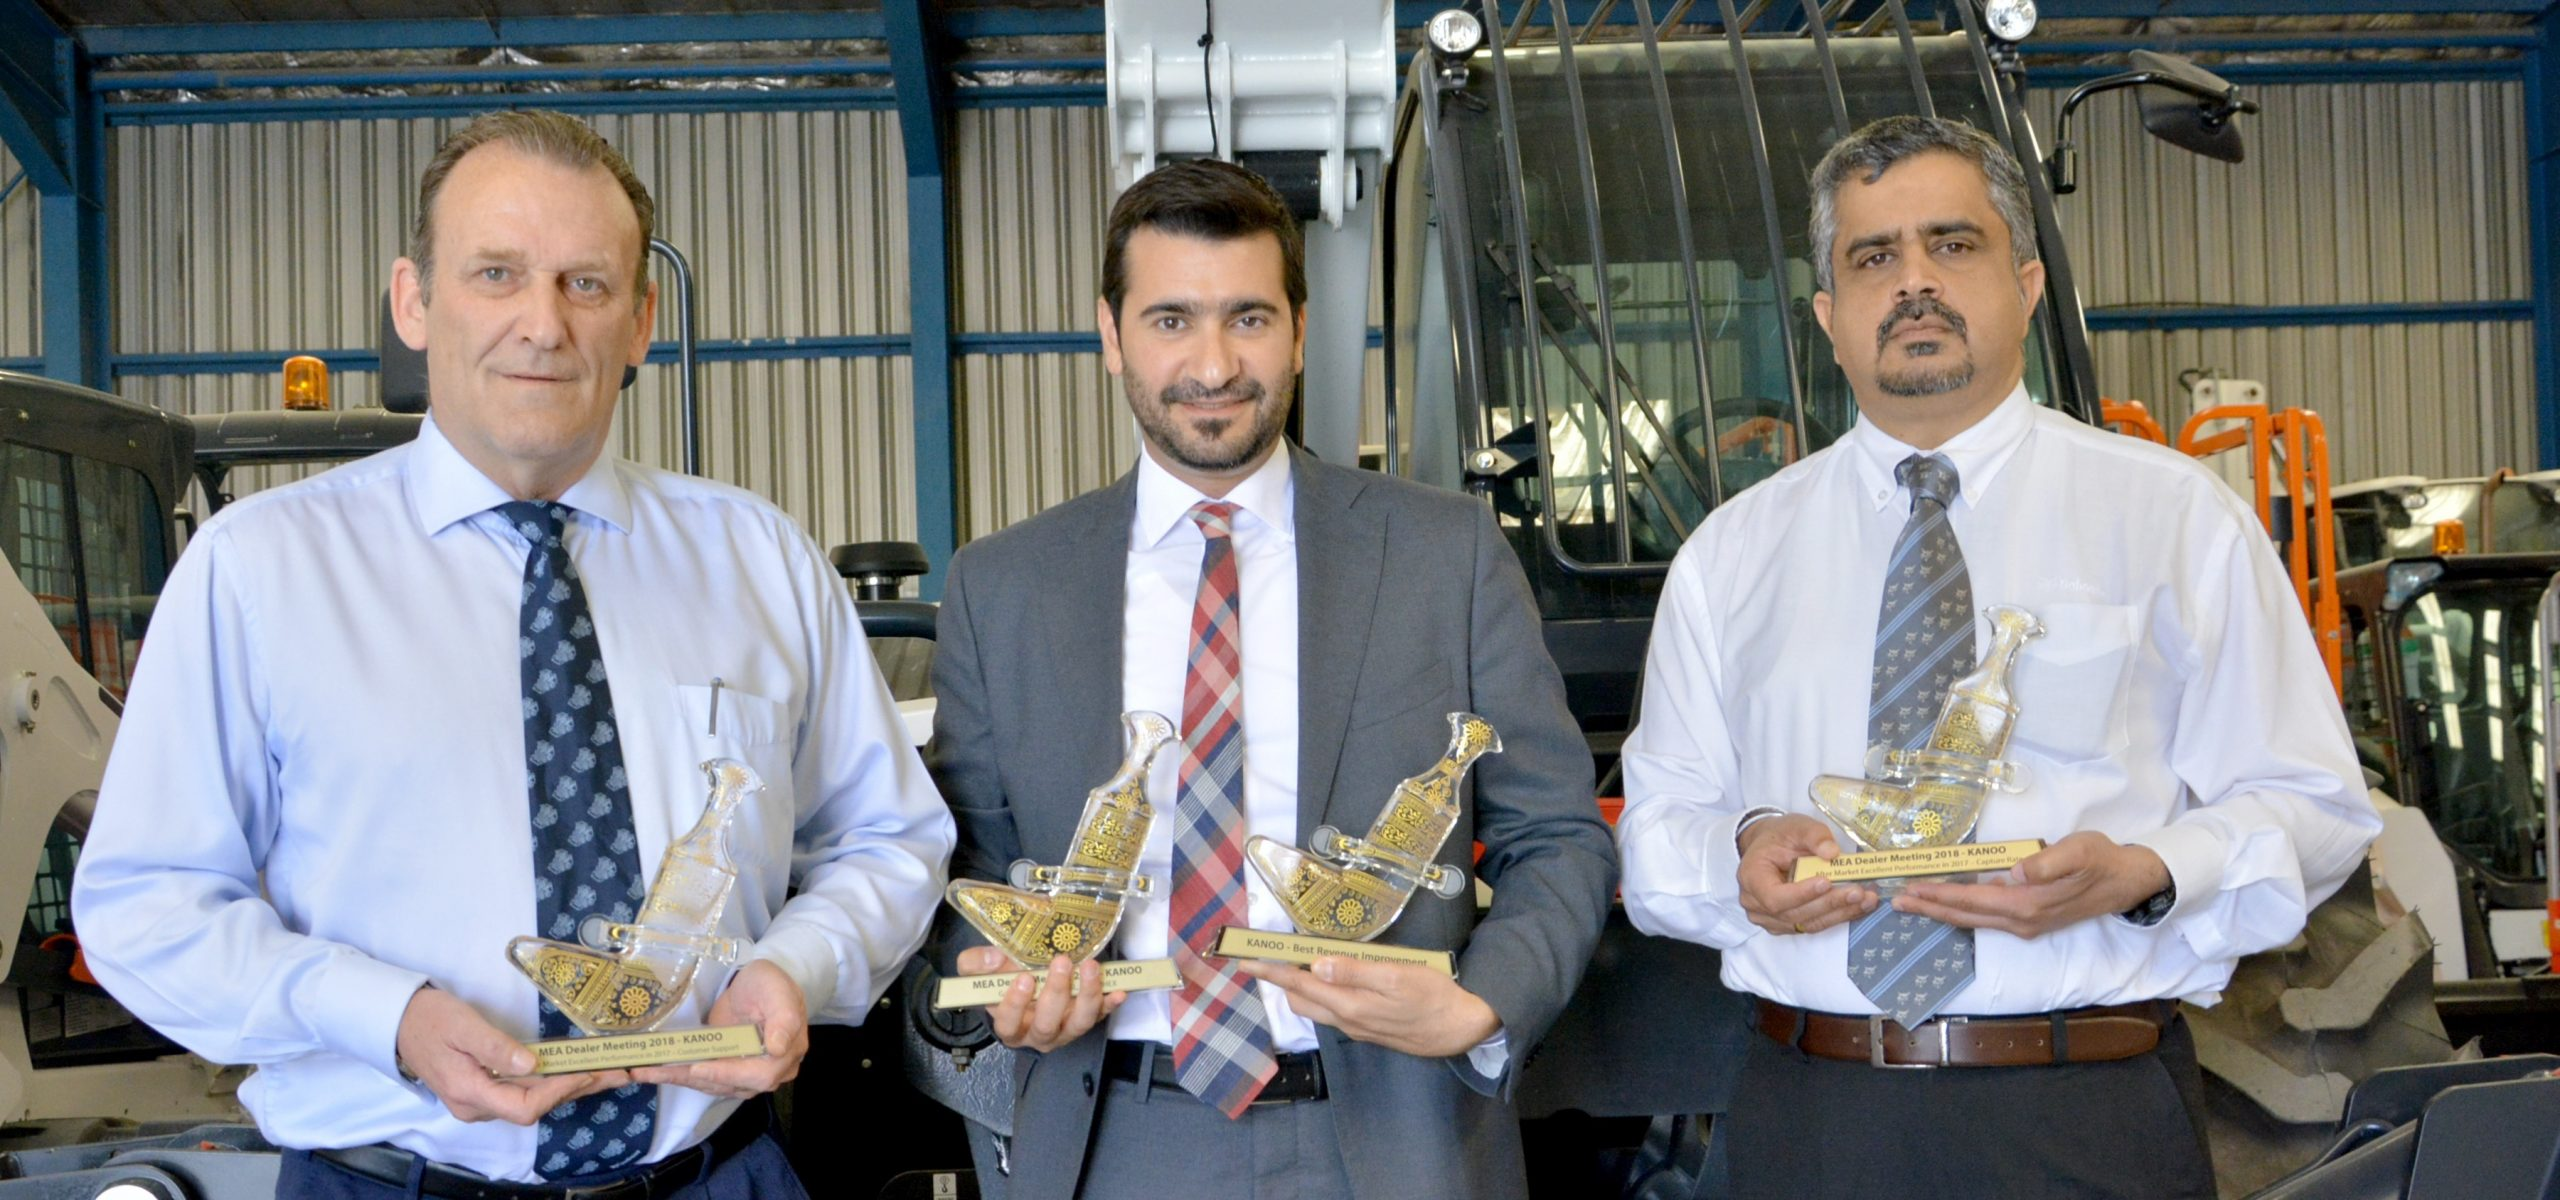 Kanoo Machinery Team With Bobcat Awards Copy 1